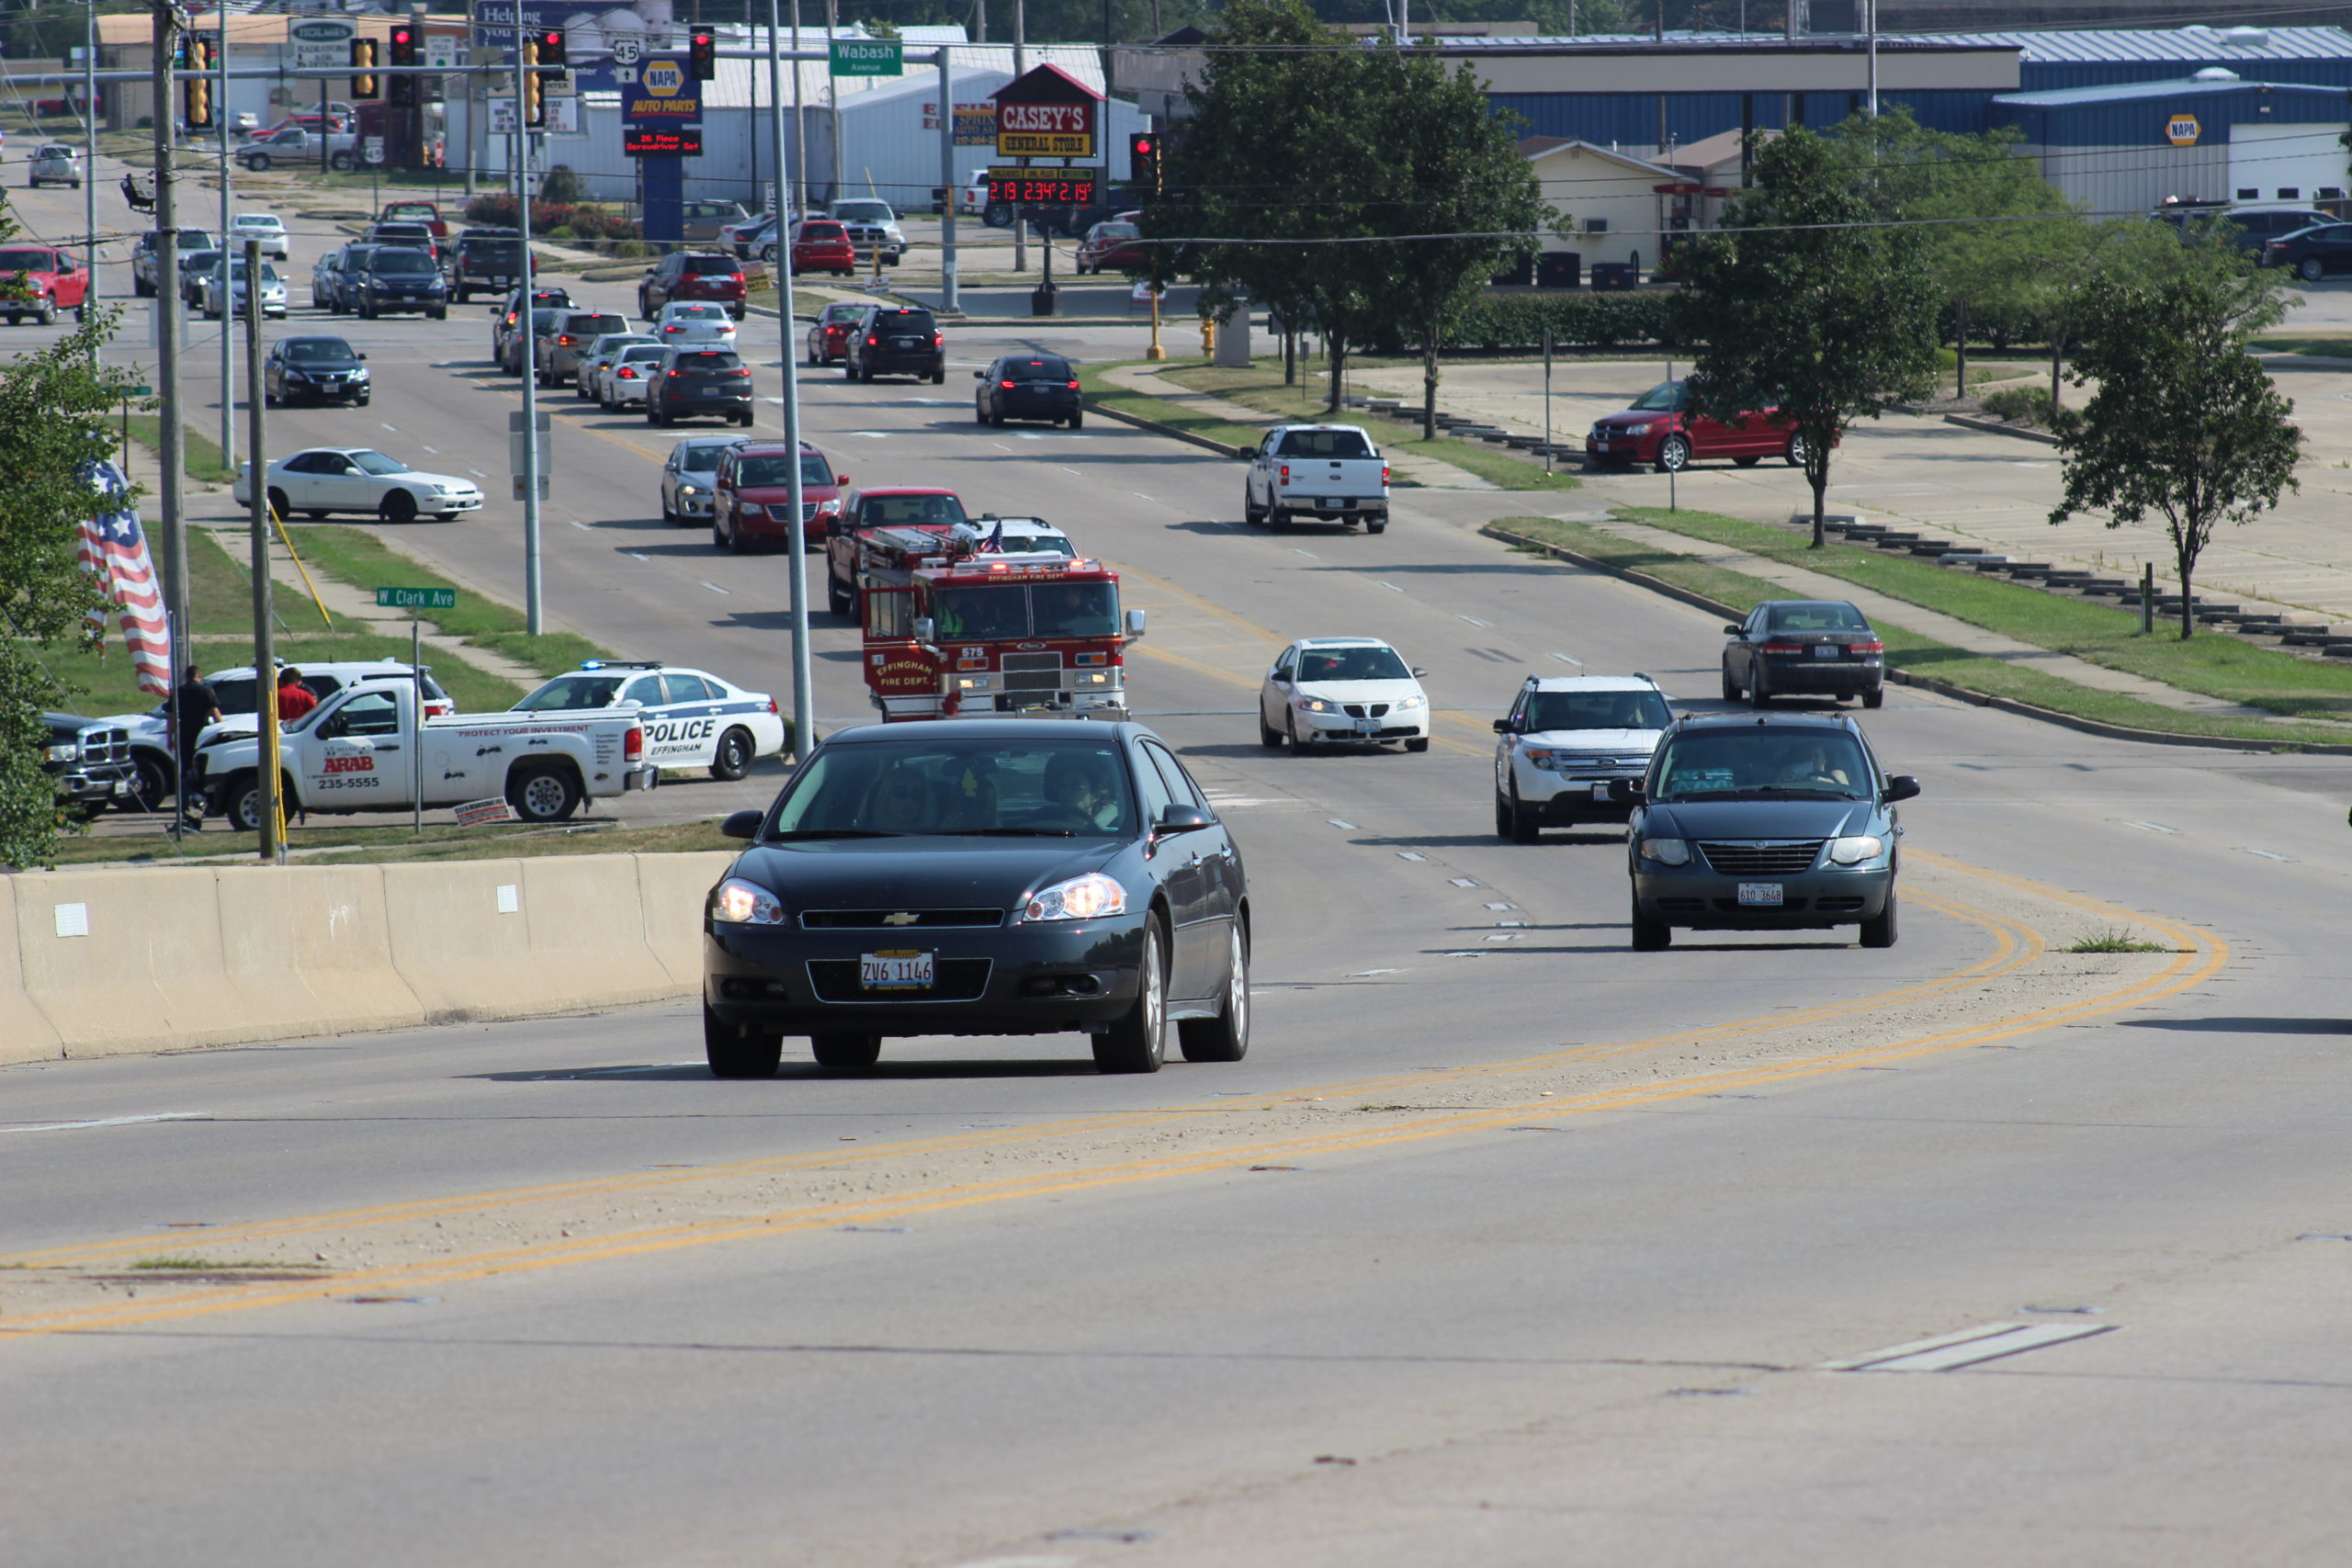 Effingham Fire Department Responds to Accident at Banker and Clark